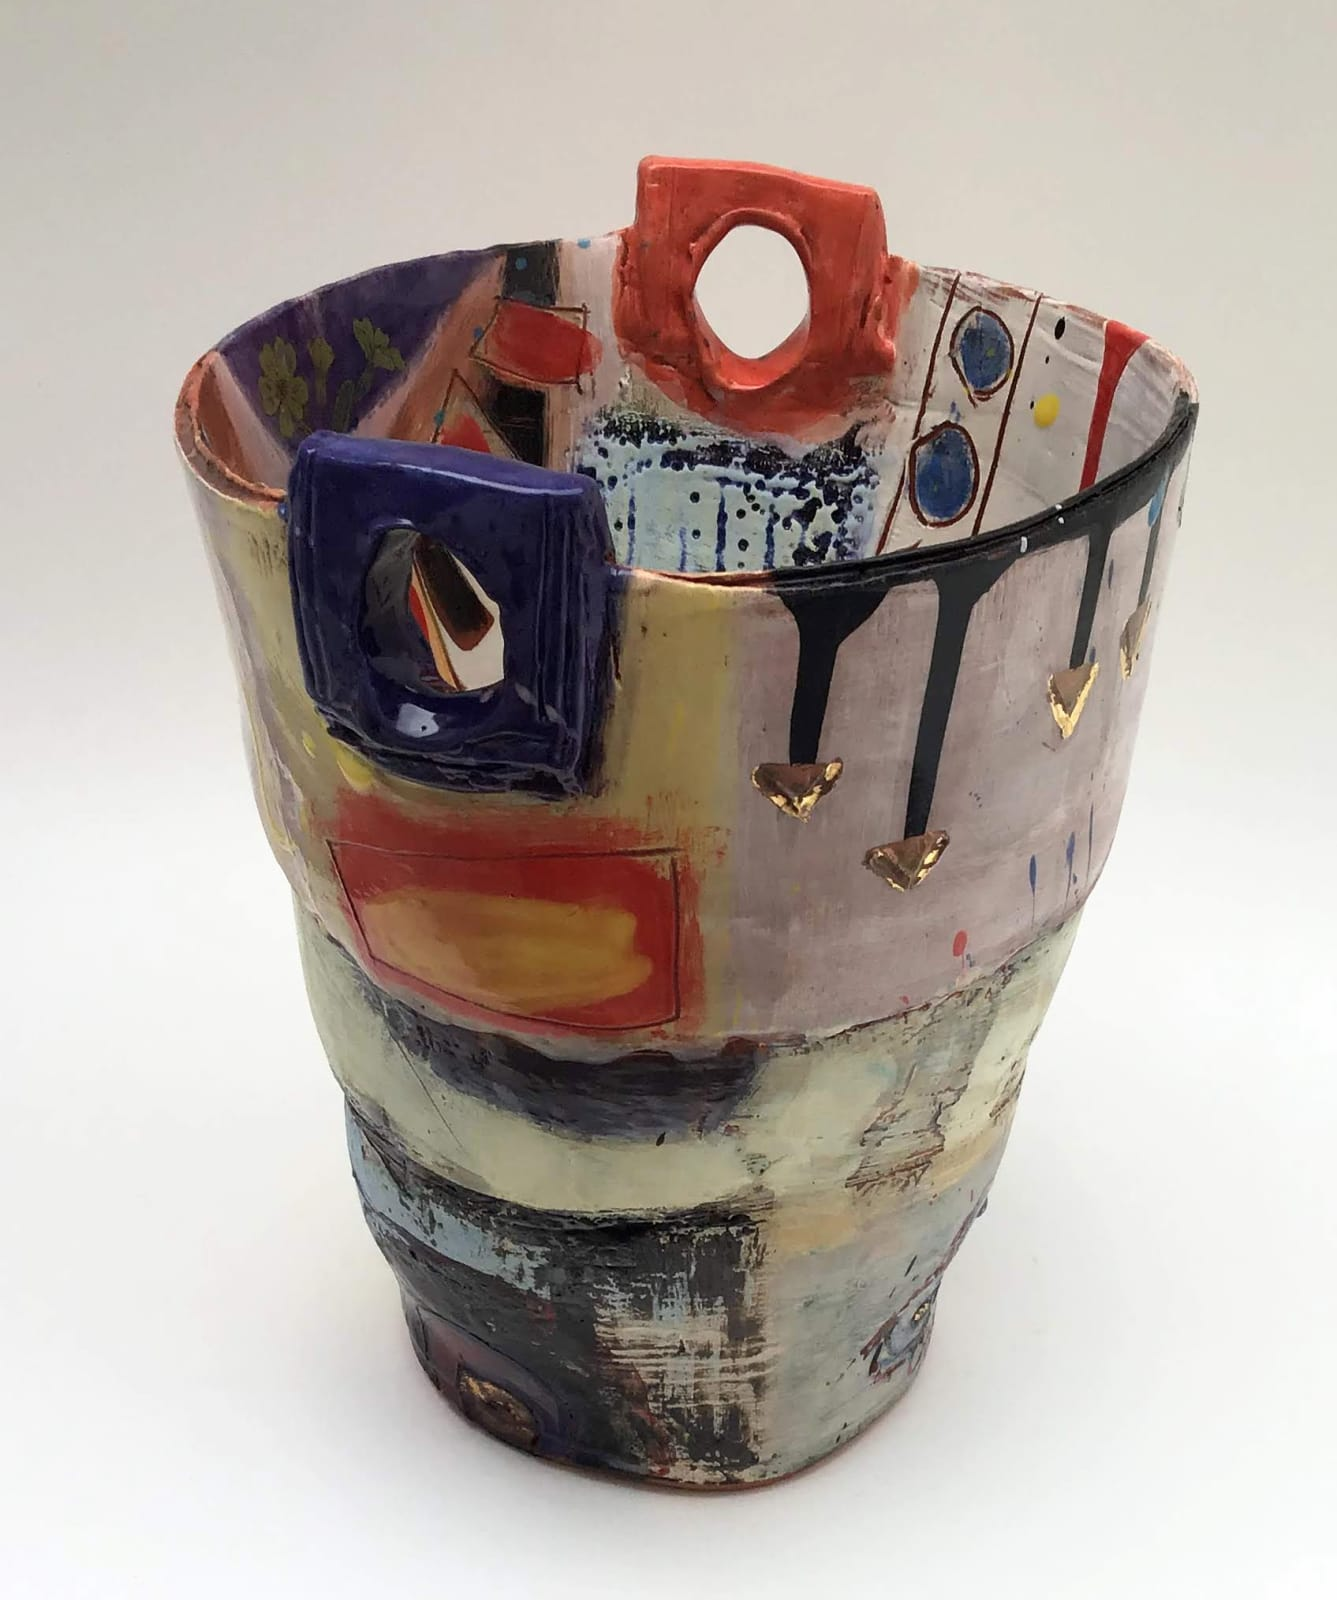 Linda Styles, Vase Form with Chunky Hole Handles, 2020